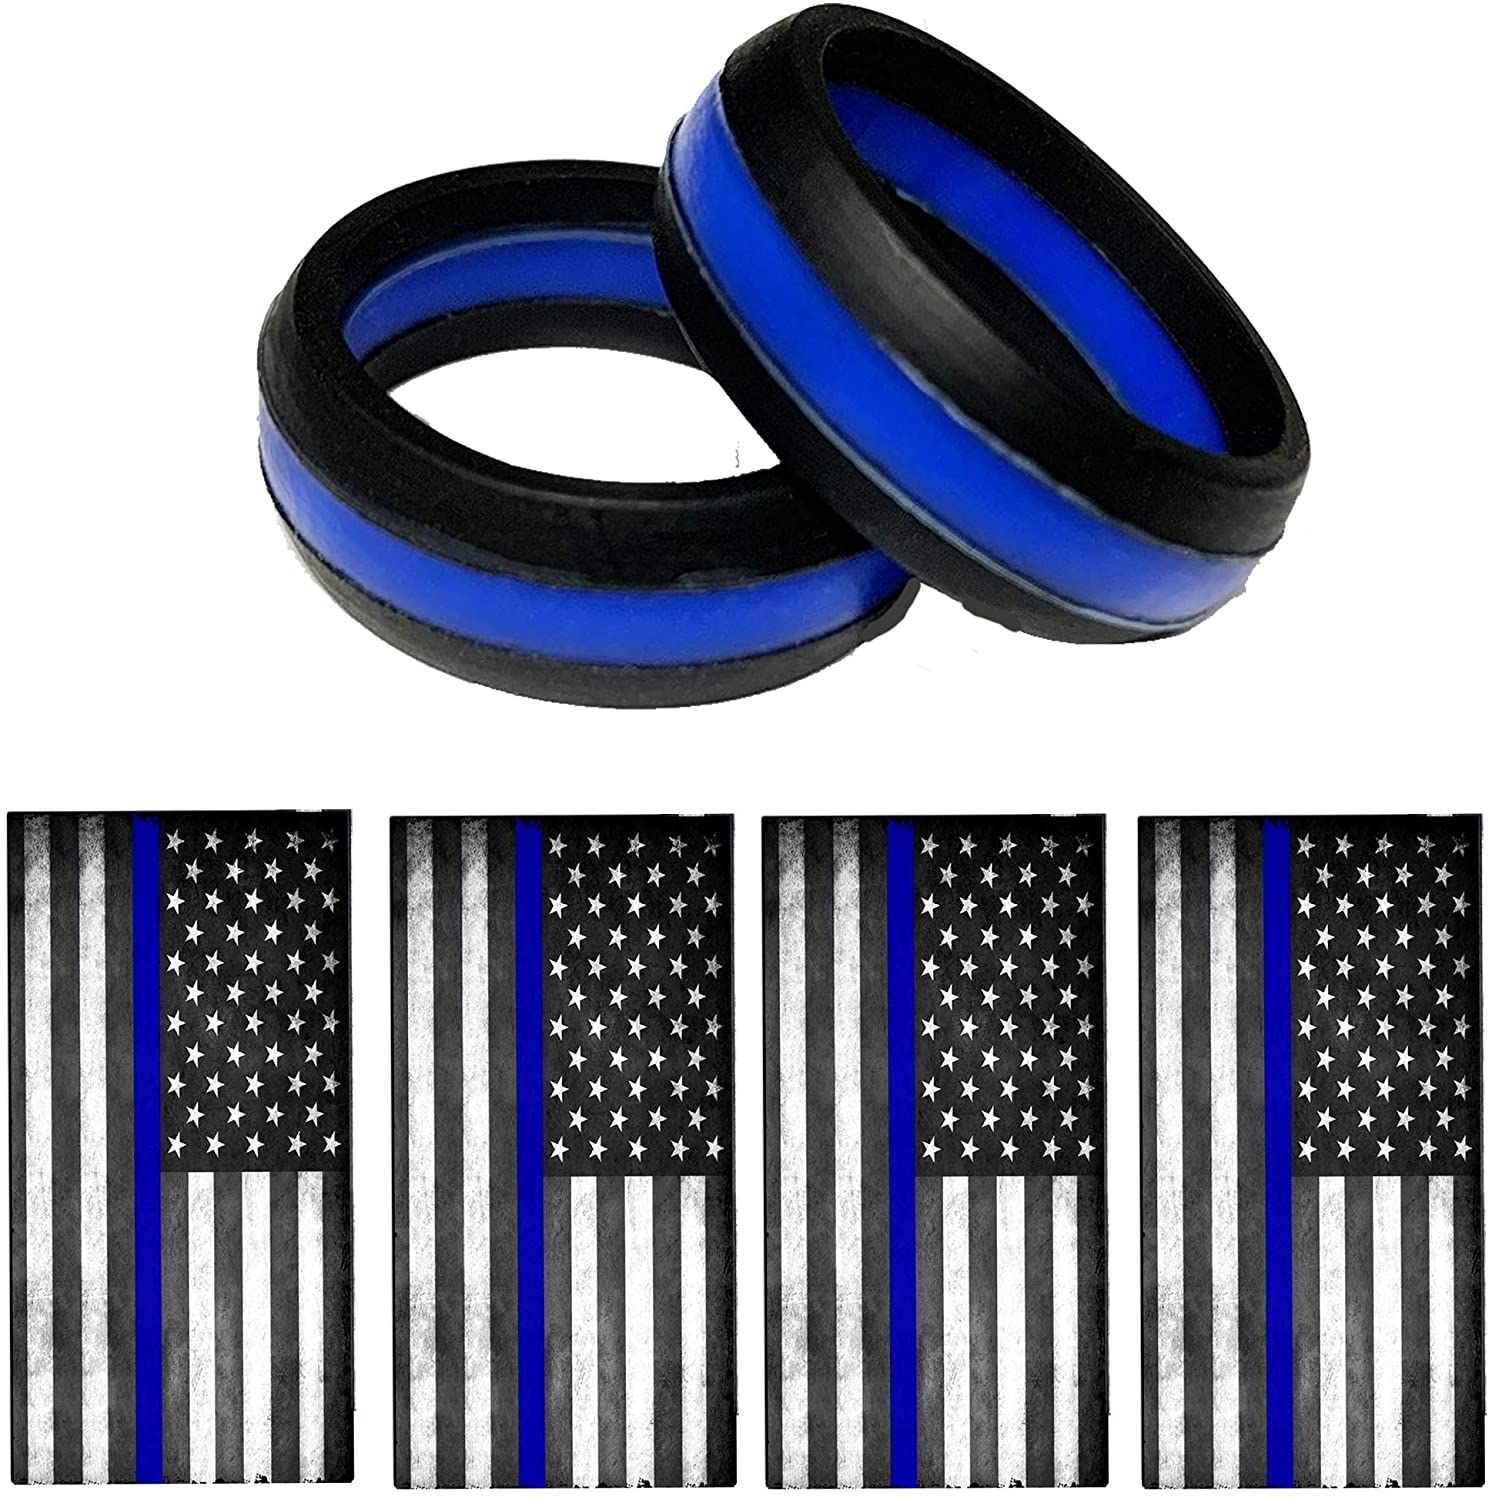 Brotherhood Thin Blue Line Police Silicone Wedding Ring Band Mens Or Womens Wedding Rings with 4 Police American Flag Decals - 2 Police Wedding Bands…